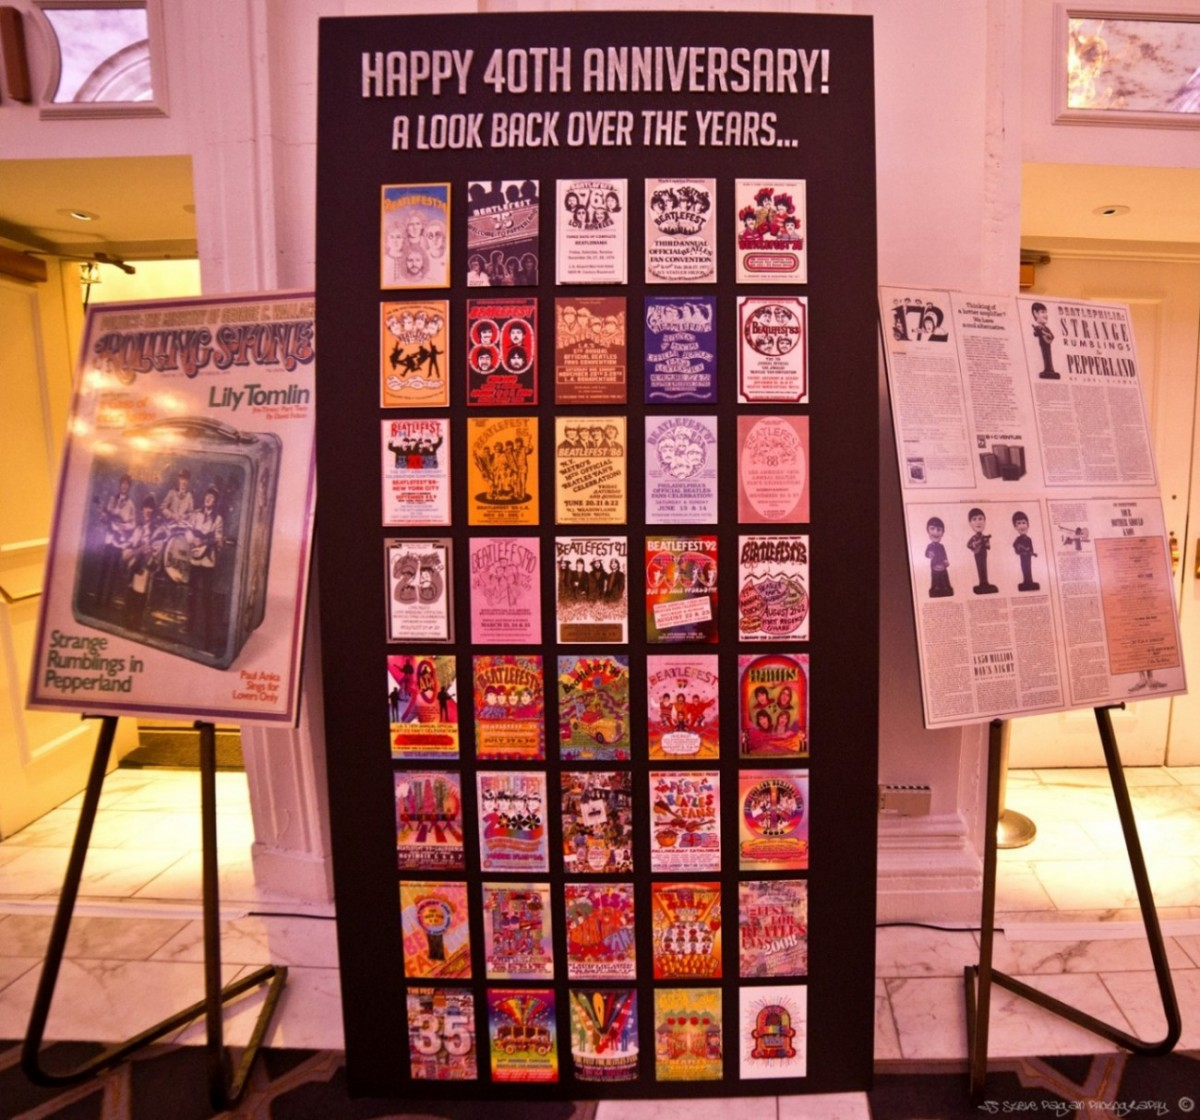 At the NYC Fest, fans were able to take a look back at 40 years of Fest memories.